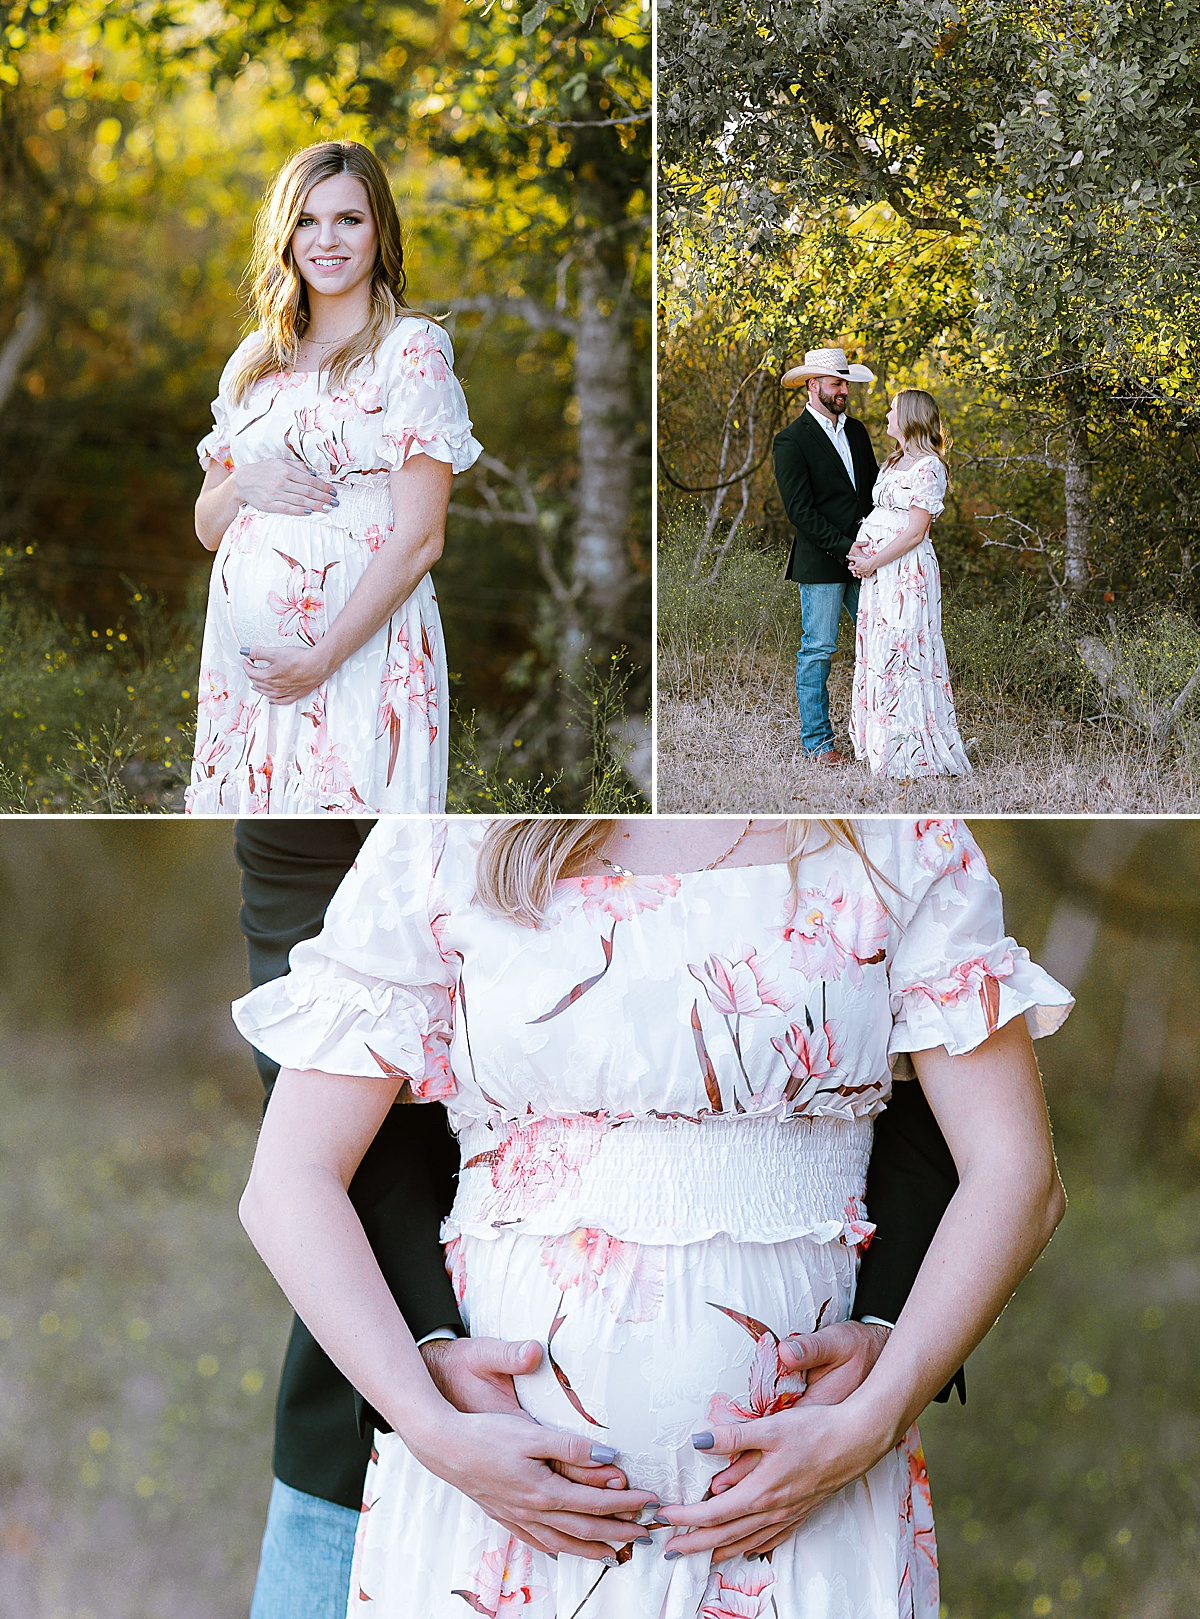 maternity-photo-session-lavernia-texas-carly-barton-photography_0005.jpg